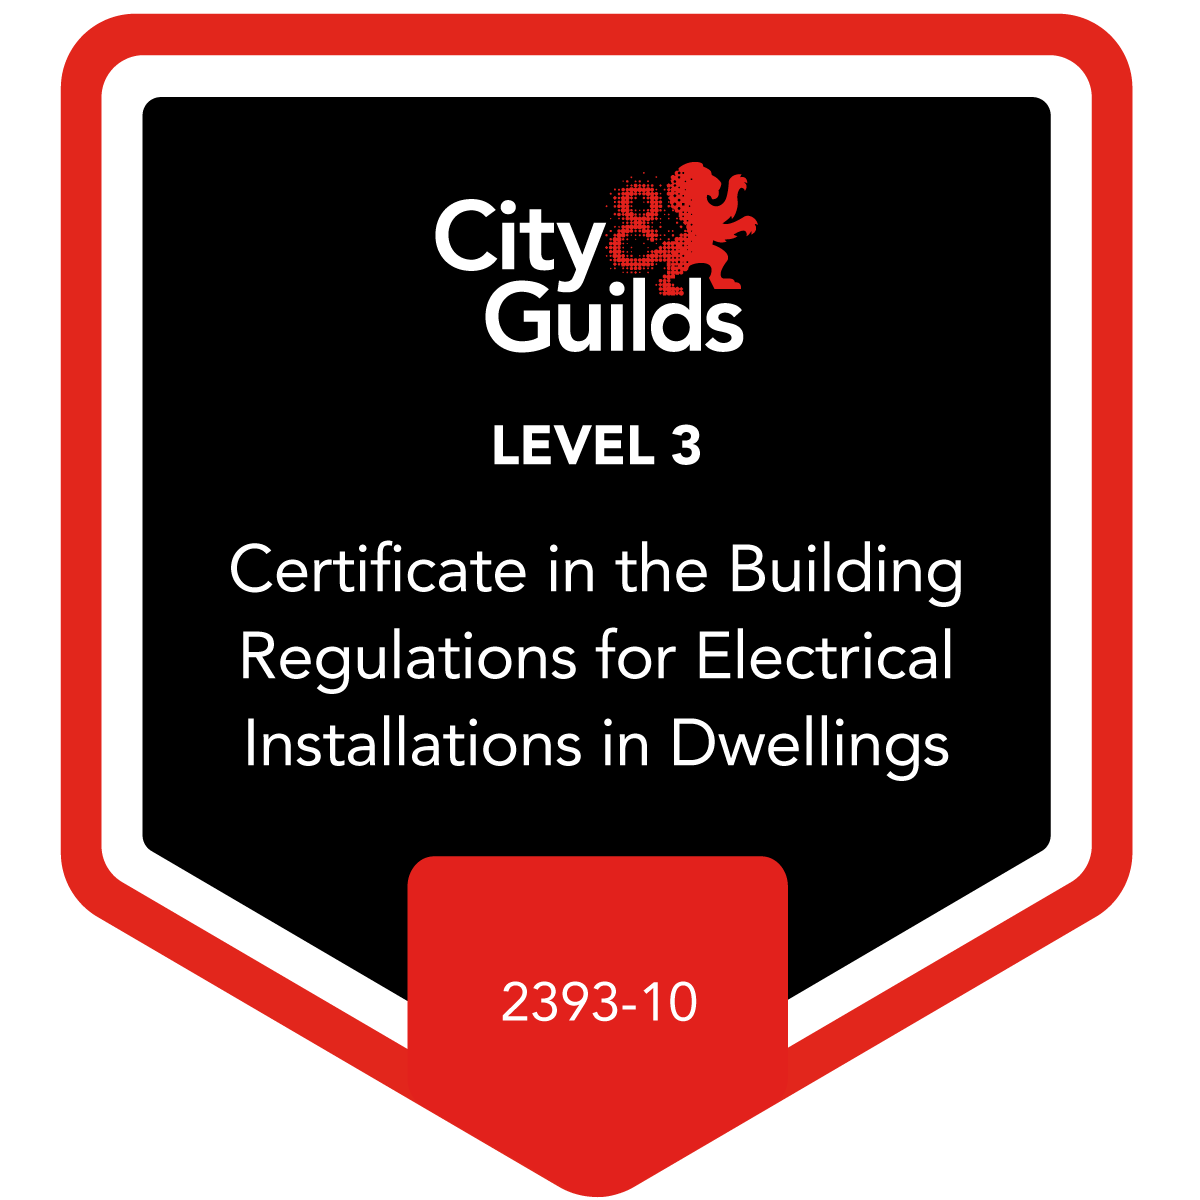 Level 3 Certificate in the Building Regulations for Electrical Installations in Dwellings - 2393-10